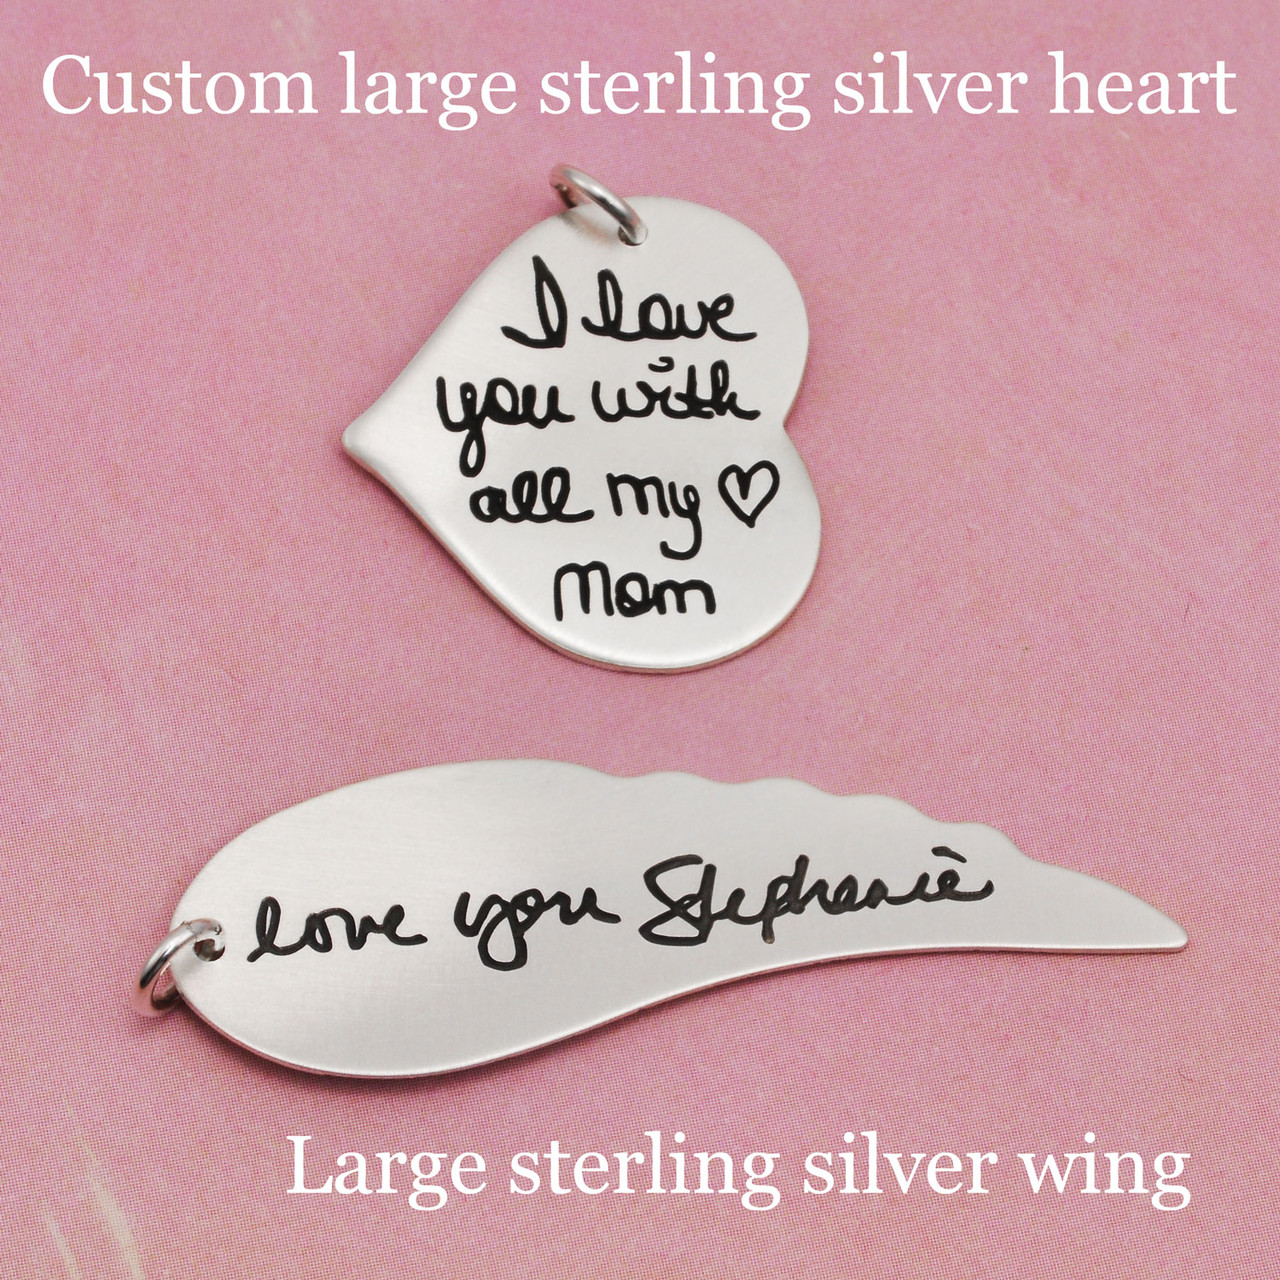 Custom large sterling silver heart and large sterling silver wing, shown with handwriting used to create the handwritten charms